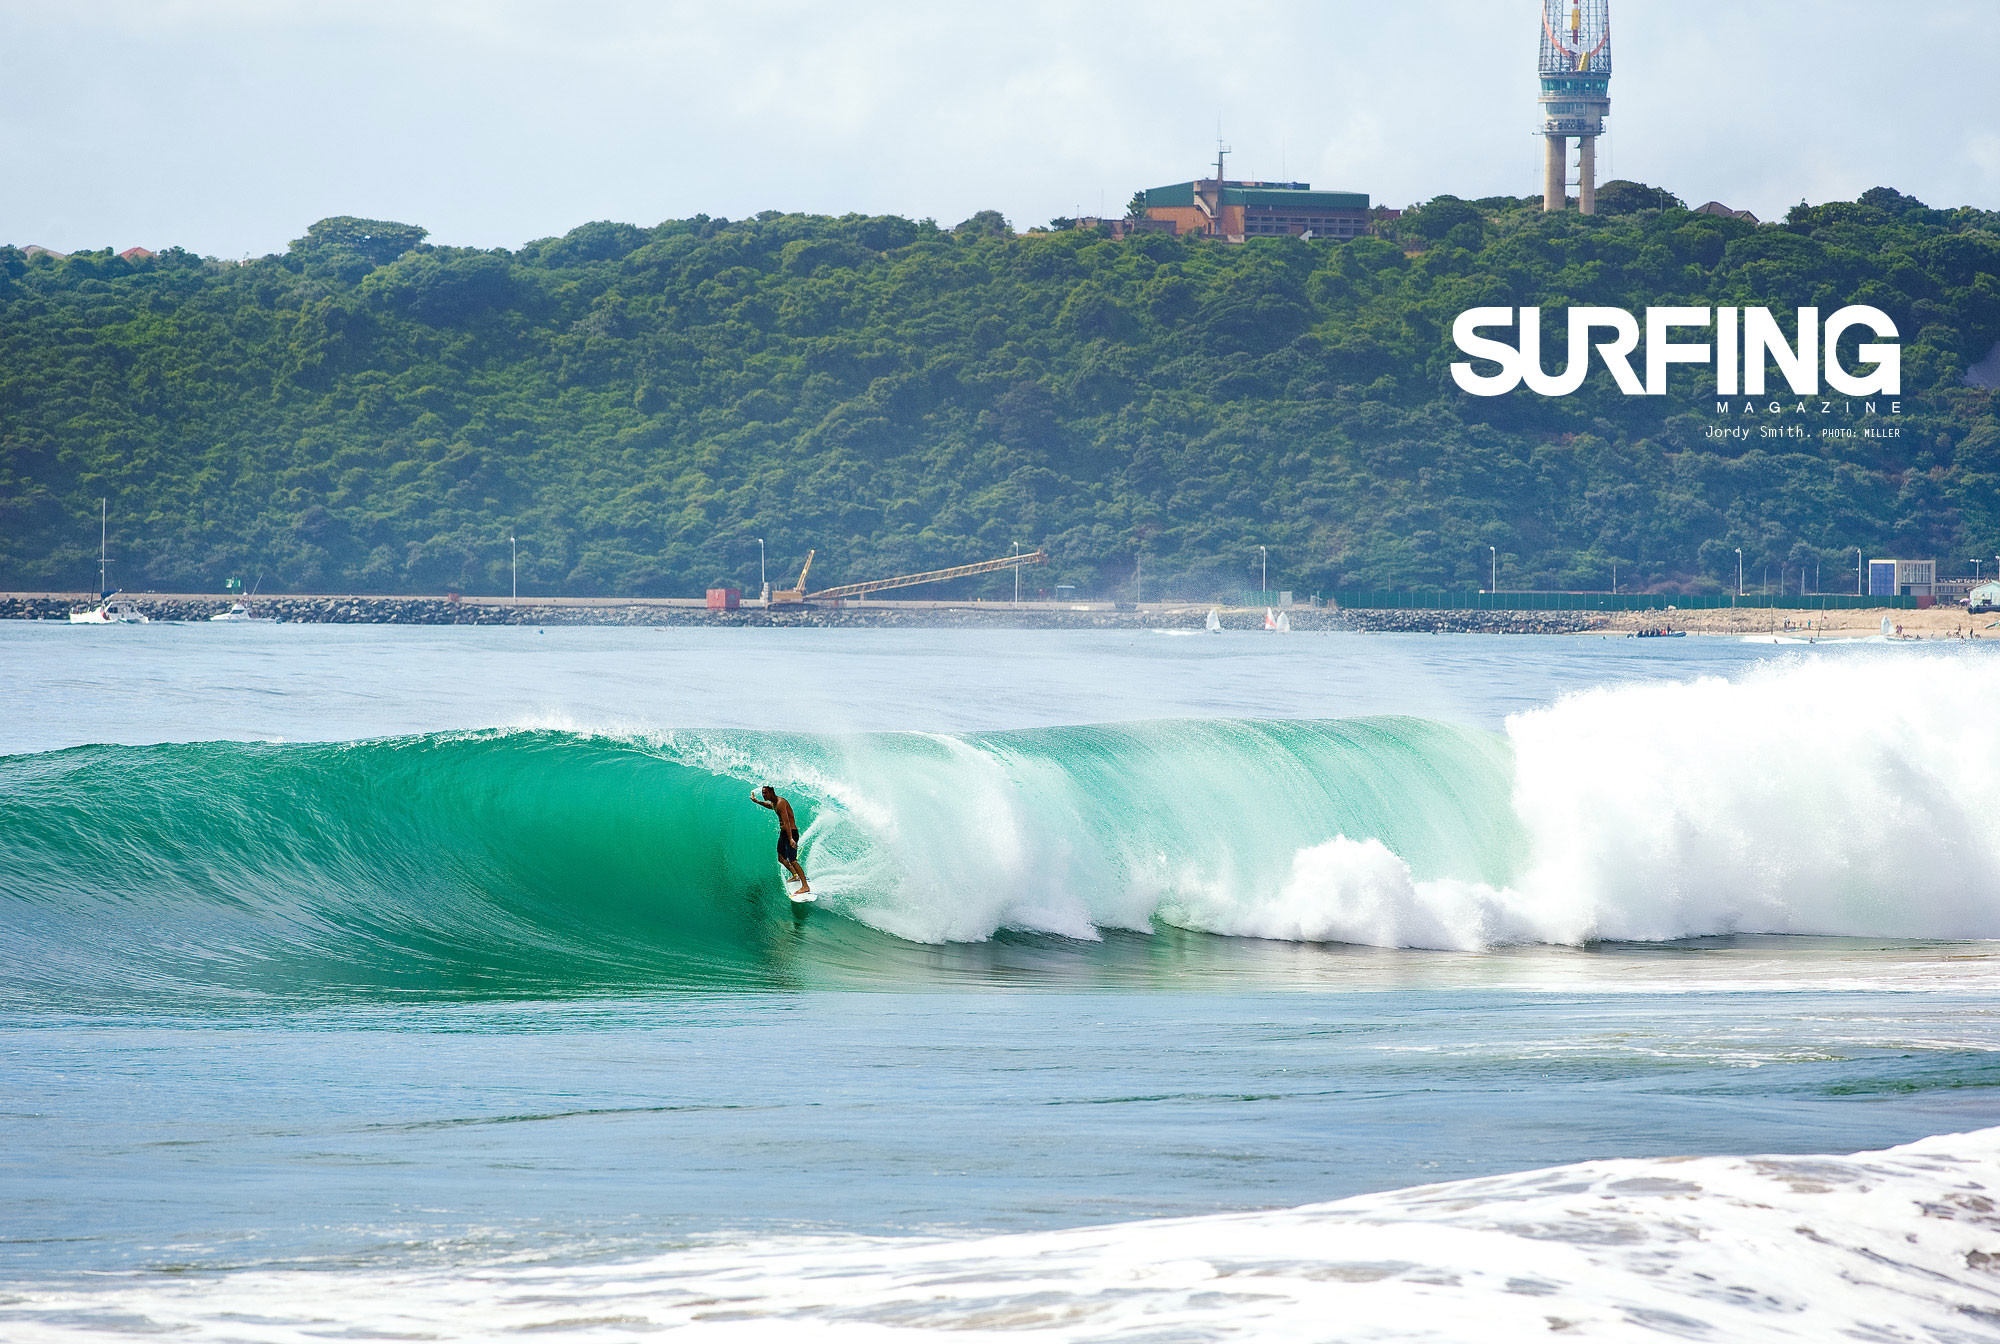 #6444326 Surfing Wallpaper for PC, Mobile